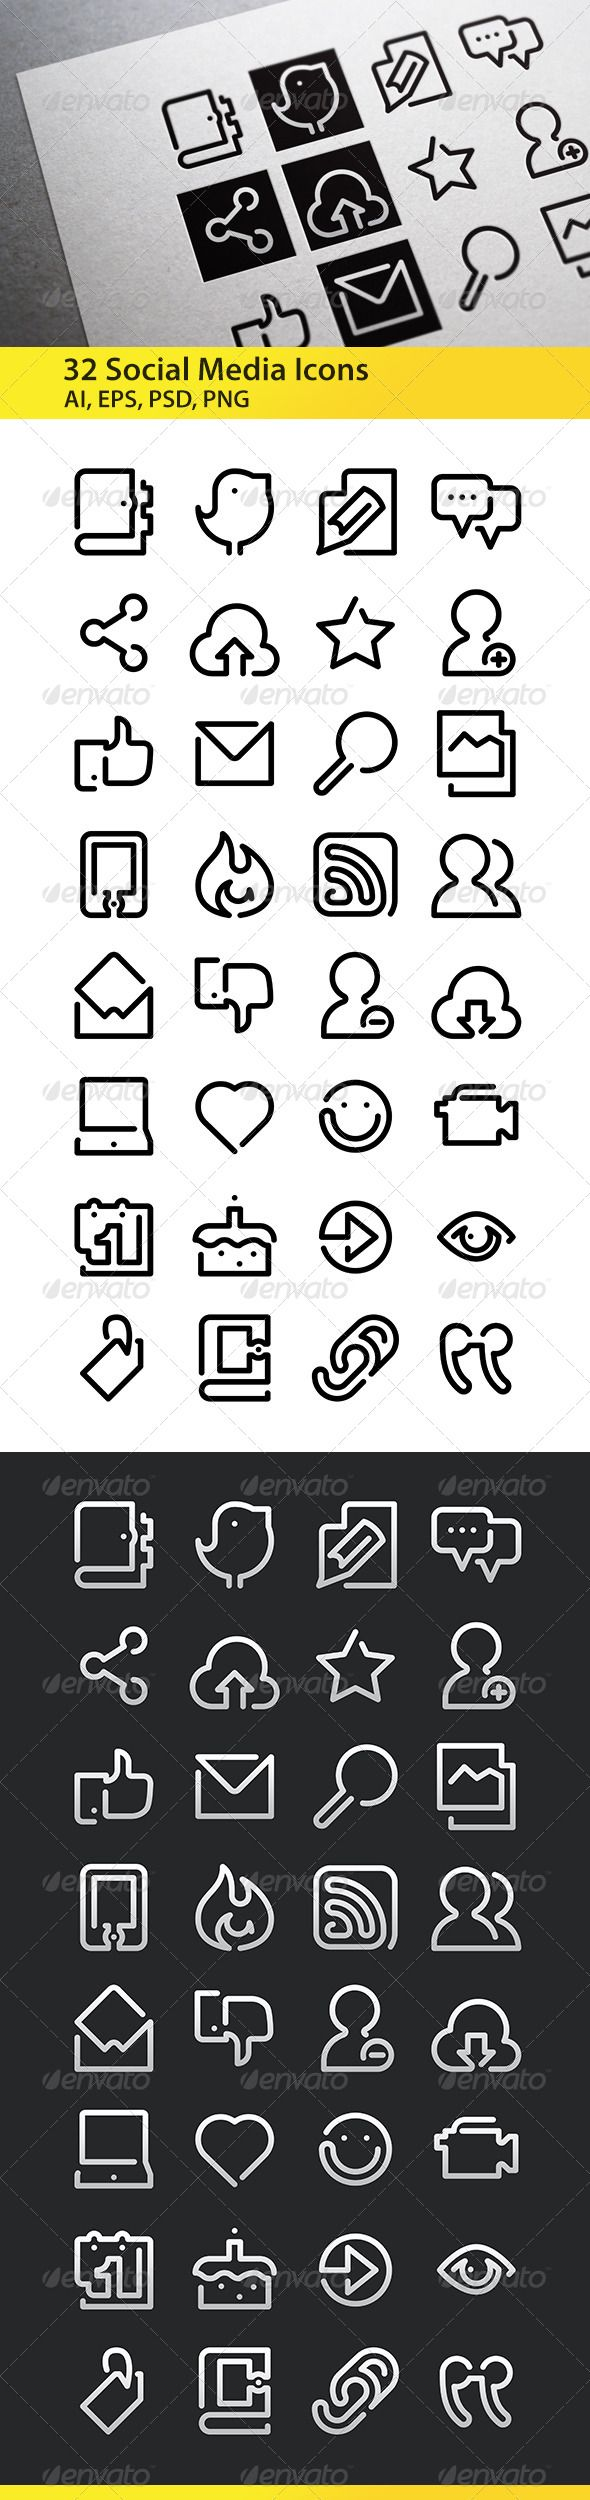 Social Media - One Line Icons  #GraphicRiver         Set of 32 Social Media Icons, great for presentations, web design, mobile applications or any type of design projects.  	 The pack contains EPS, AI, PSD, JPEG files and transparent PNG for each icon (128×128 pixels).  	 More icons will come soon!                     Created: 25 November 13                    Graphics Files Included:   Photoshop PSD #Transparent PNG #JPG Image #Vector EPS #AI Illustrator                   High Resolution…